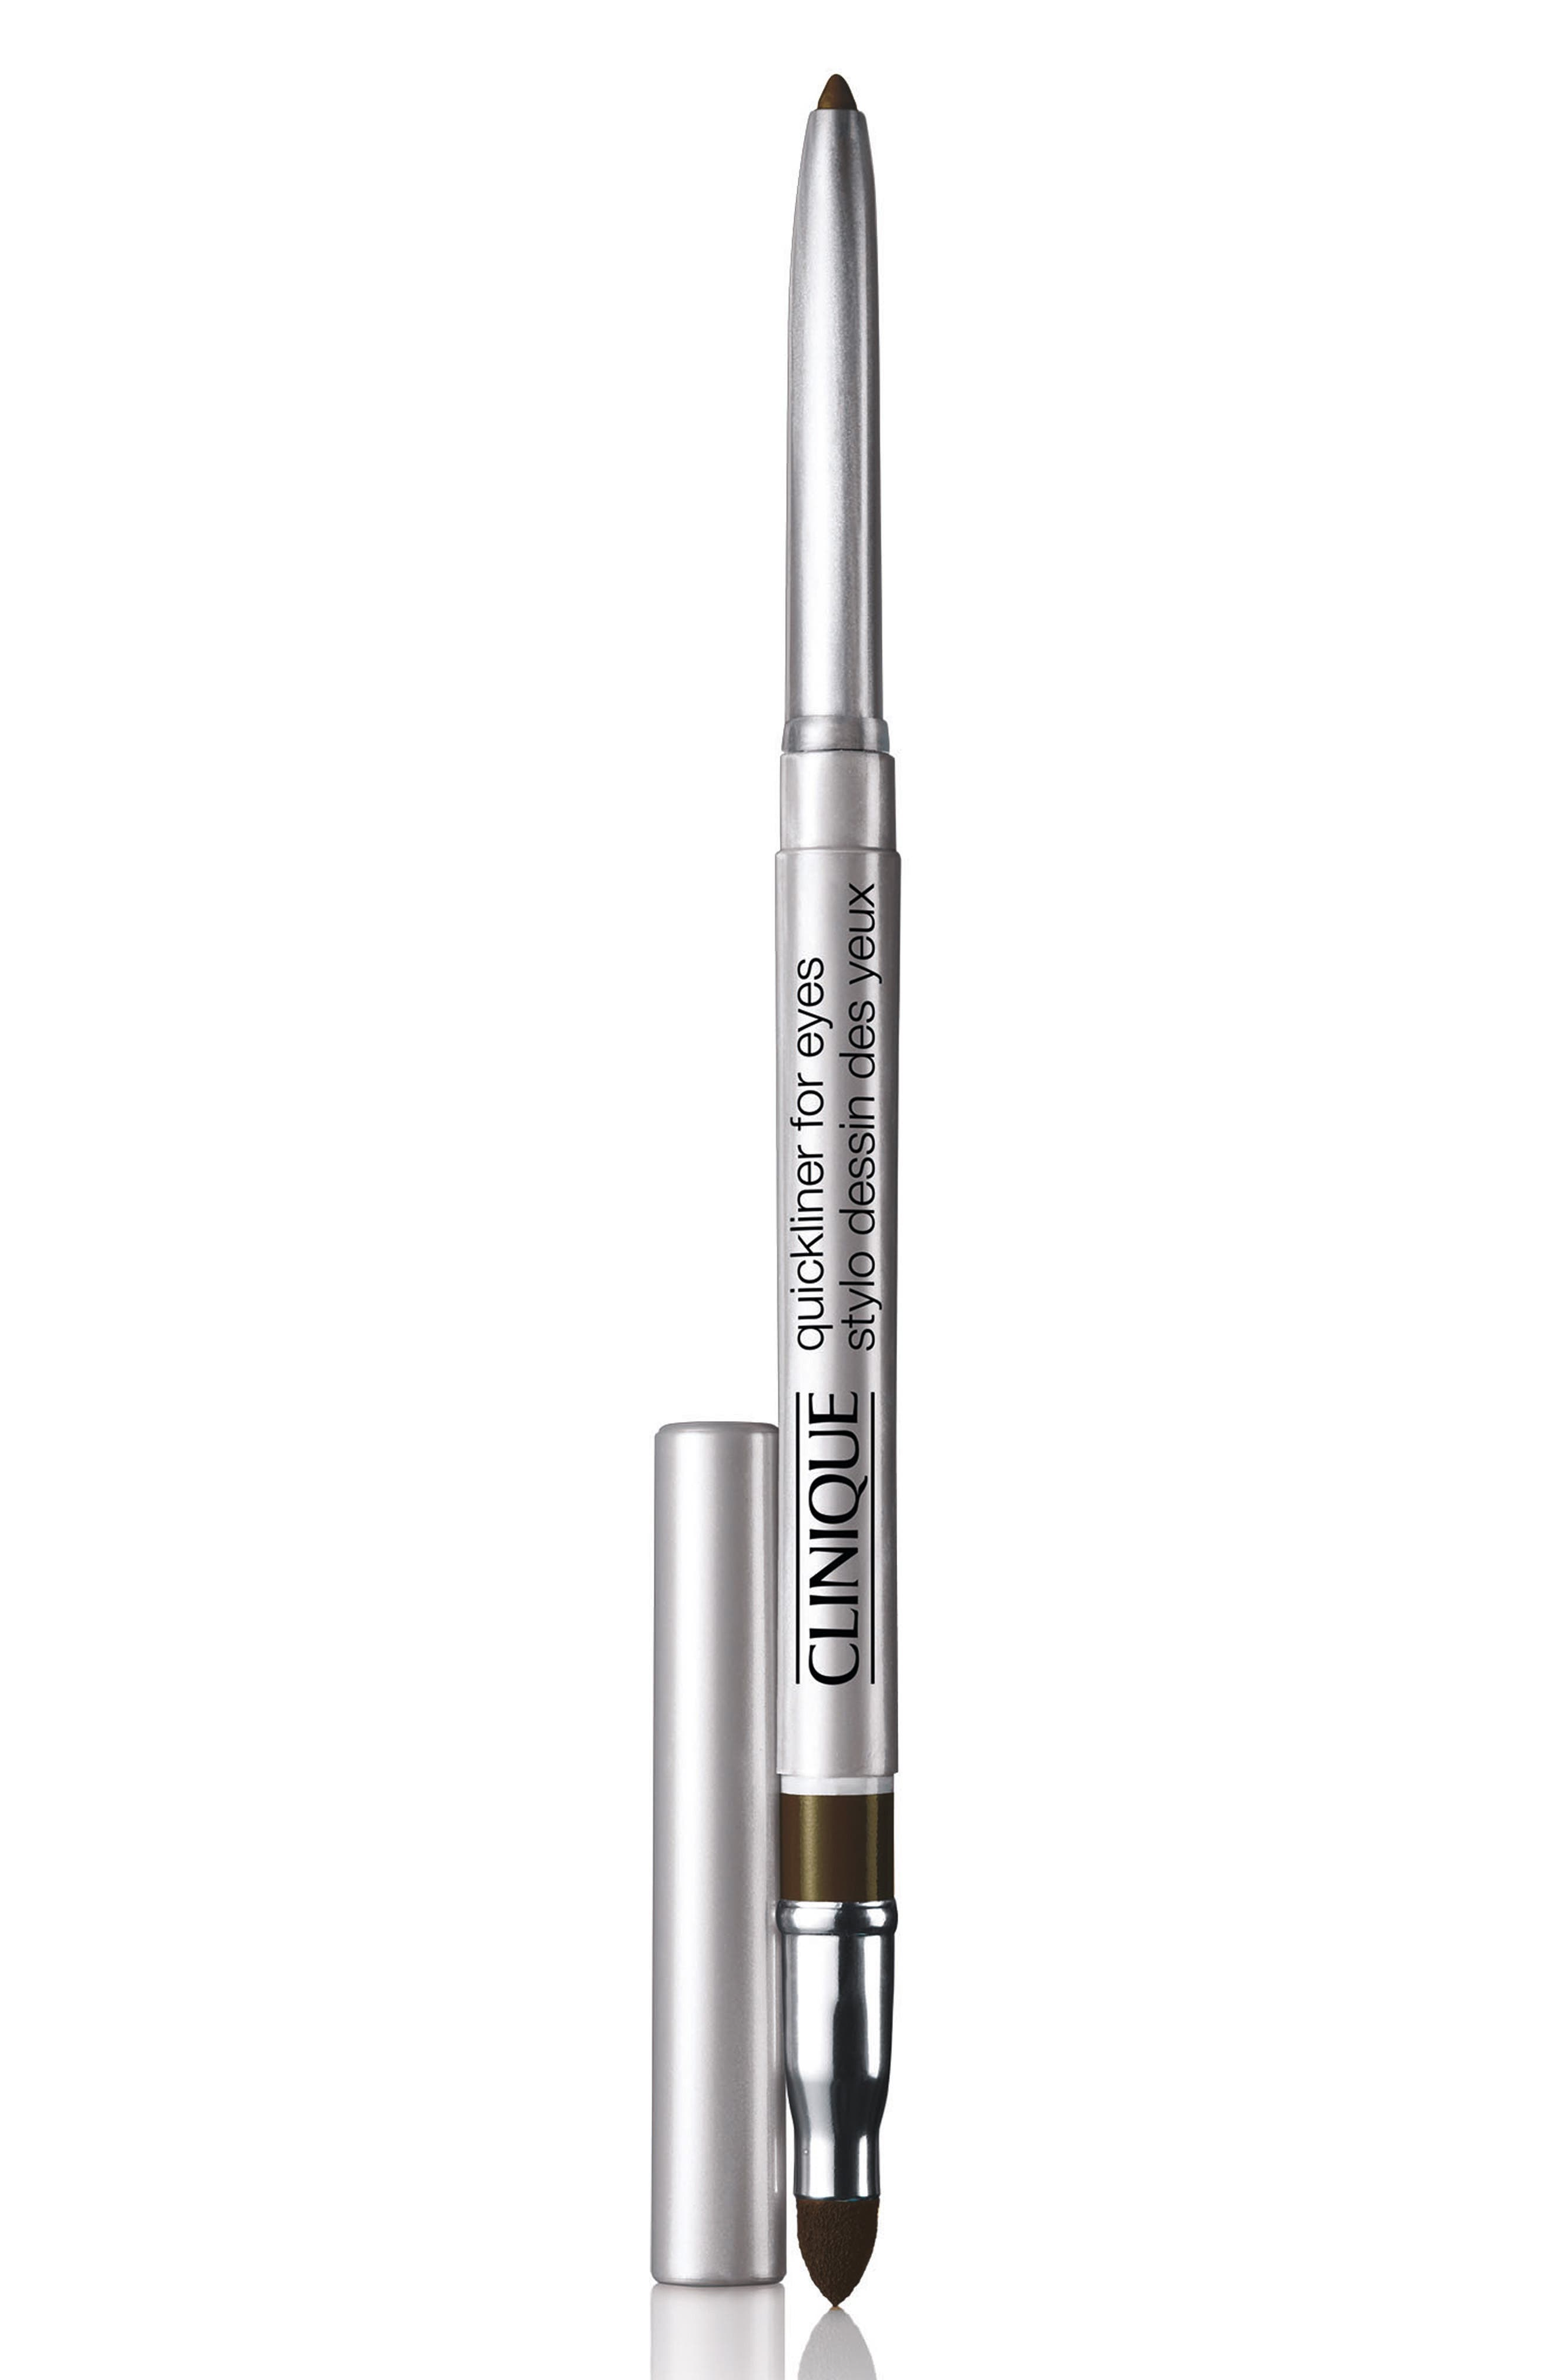 Clinique Quickliner For Eyes Eyeliner Pencil - Roast Coffee